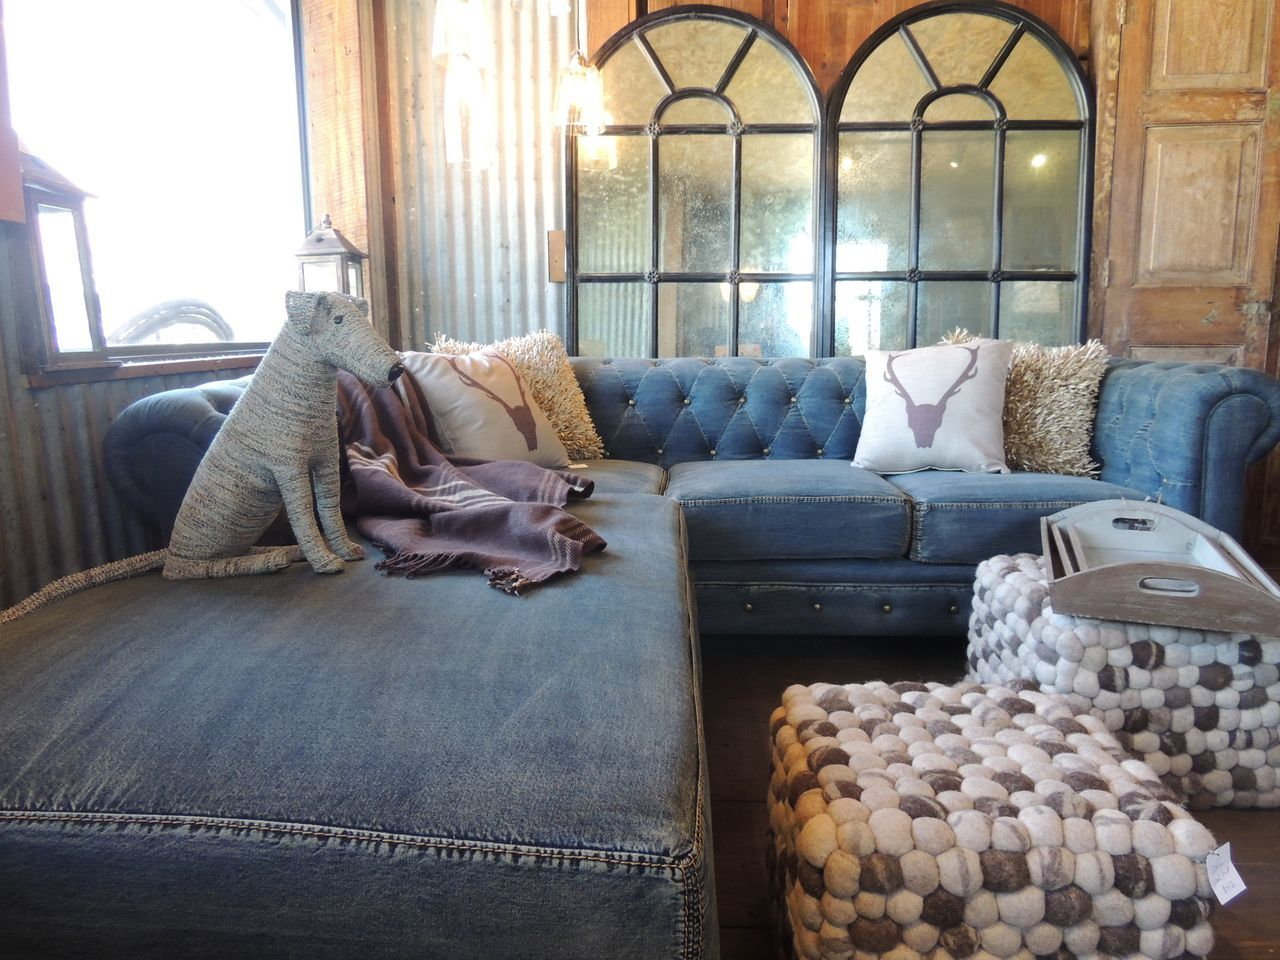 The Latest Trends In Denim Clothing And Design Sectional Sofa Slipcovers Denim Sofa Denim Couch